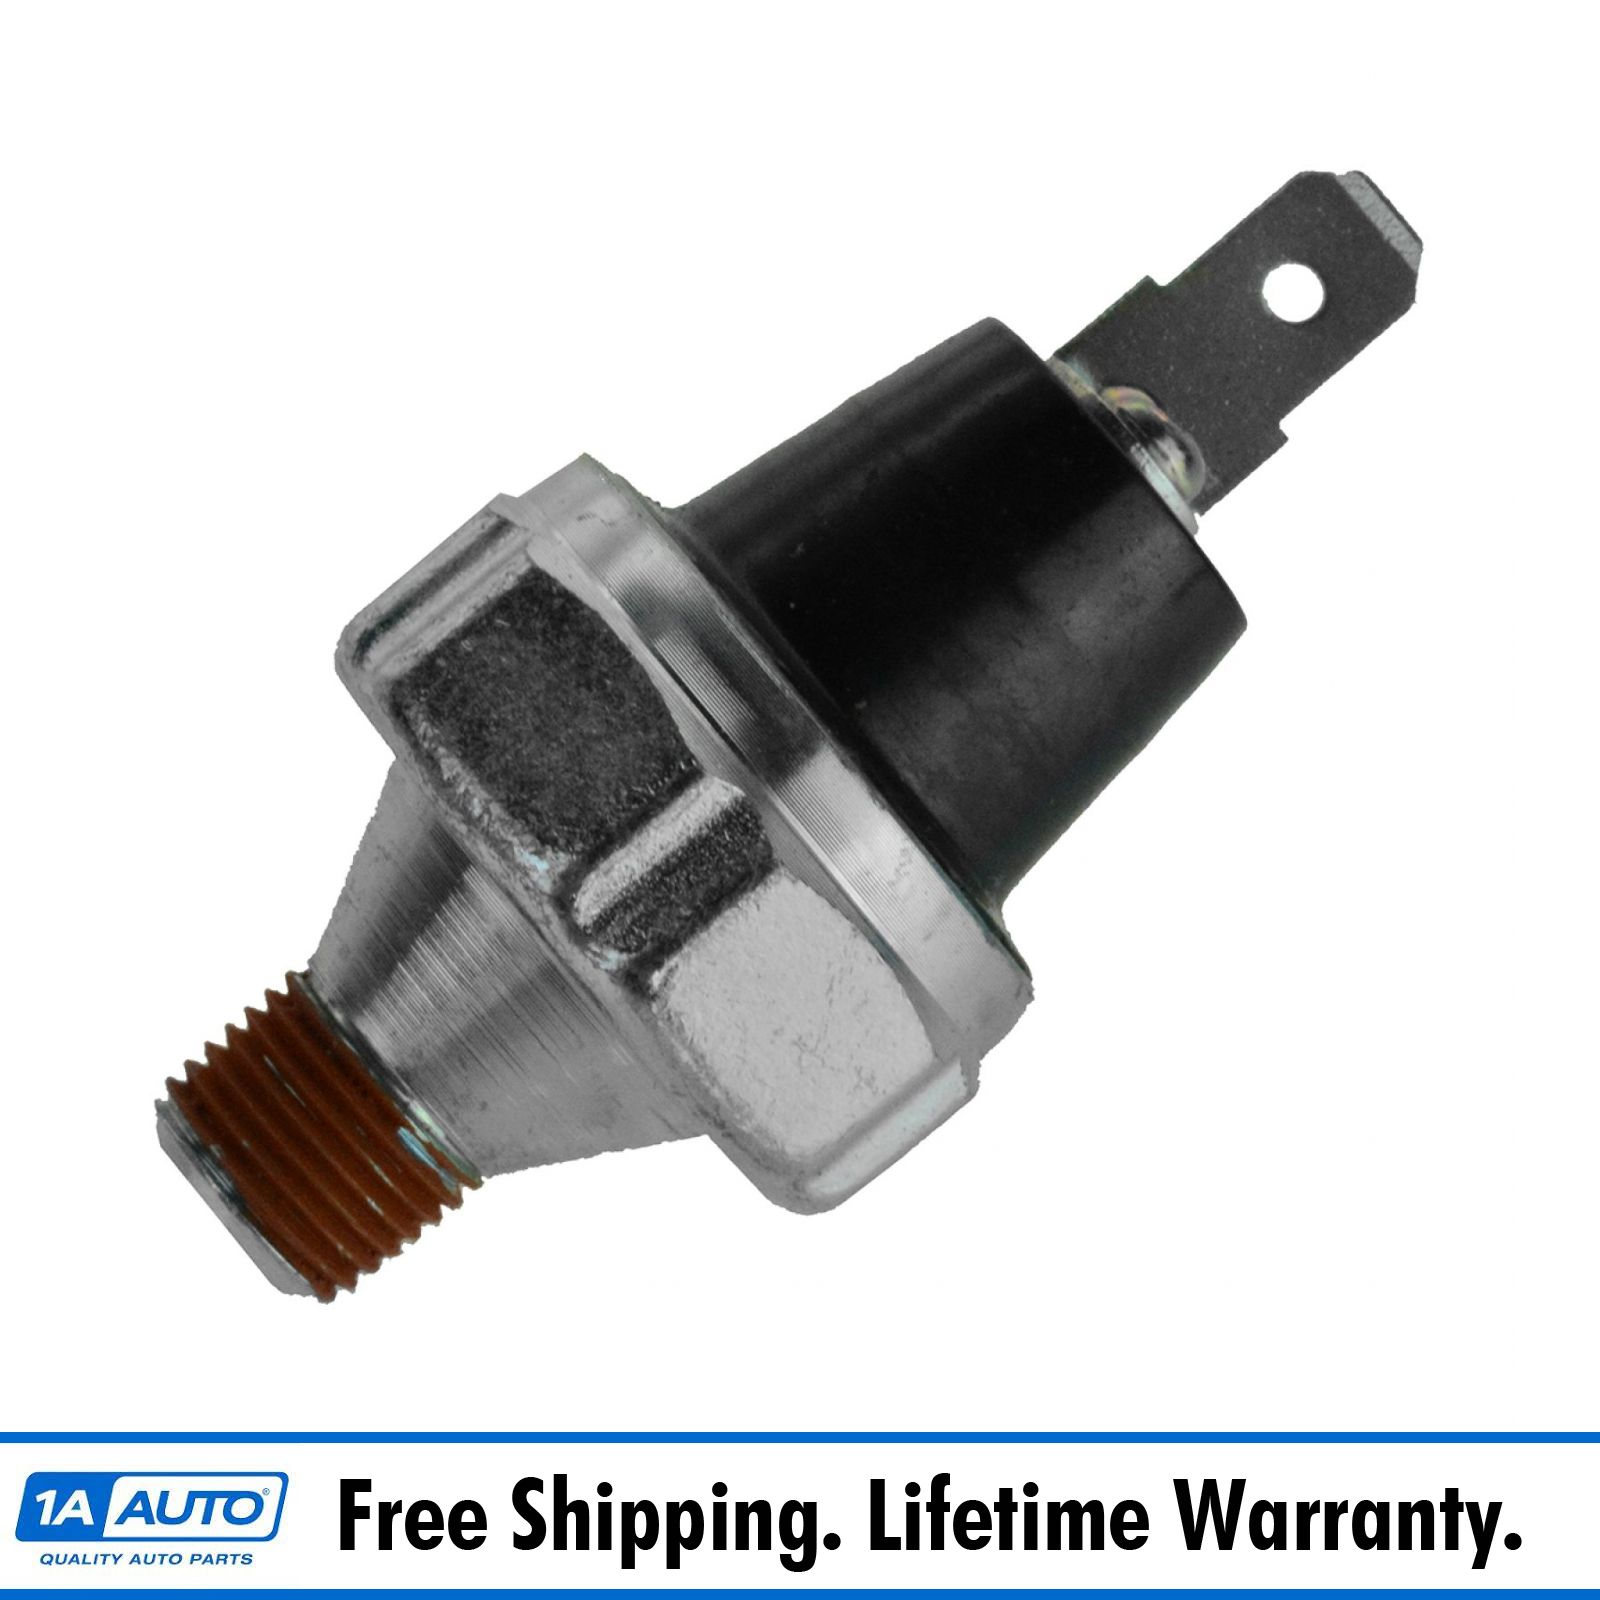 New Engine Oil Pressure Switch Sender For TOYOTA Chevy Ford Kia Lexus PS160